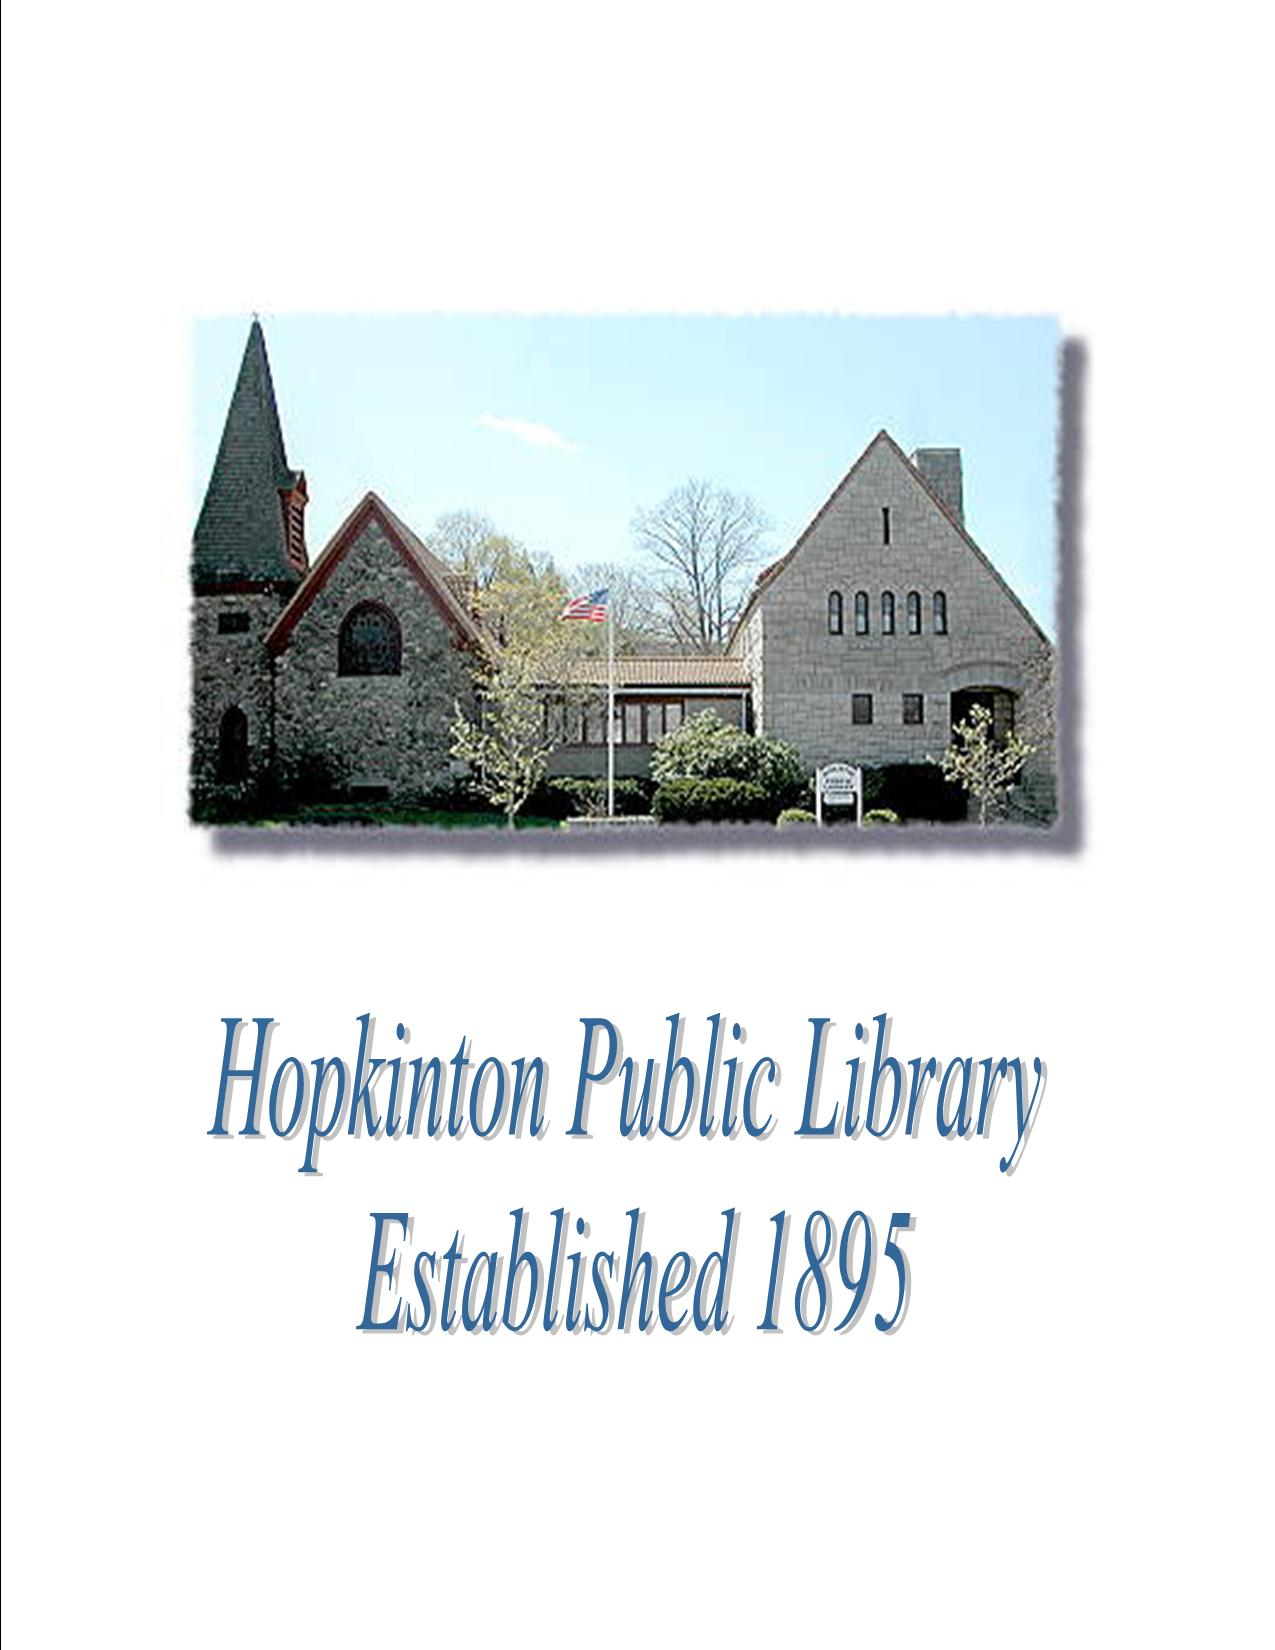 Image of the old library from the front with text 'Hopkinton Public Library Established 1895'